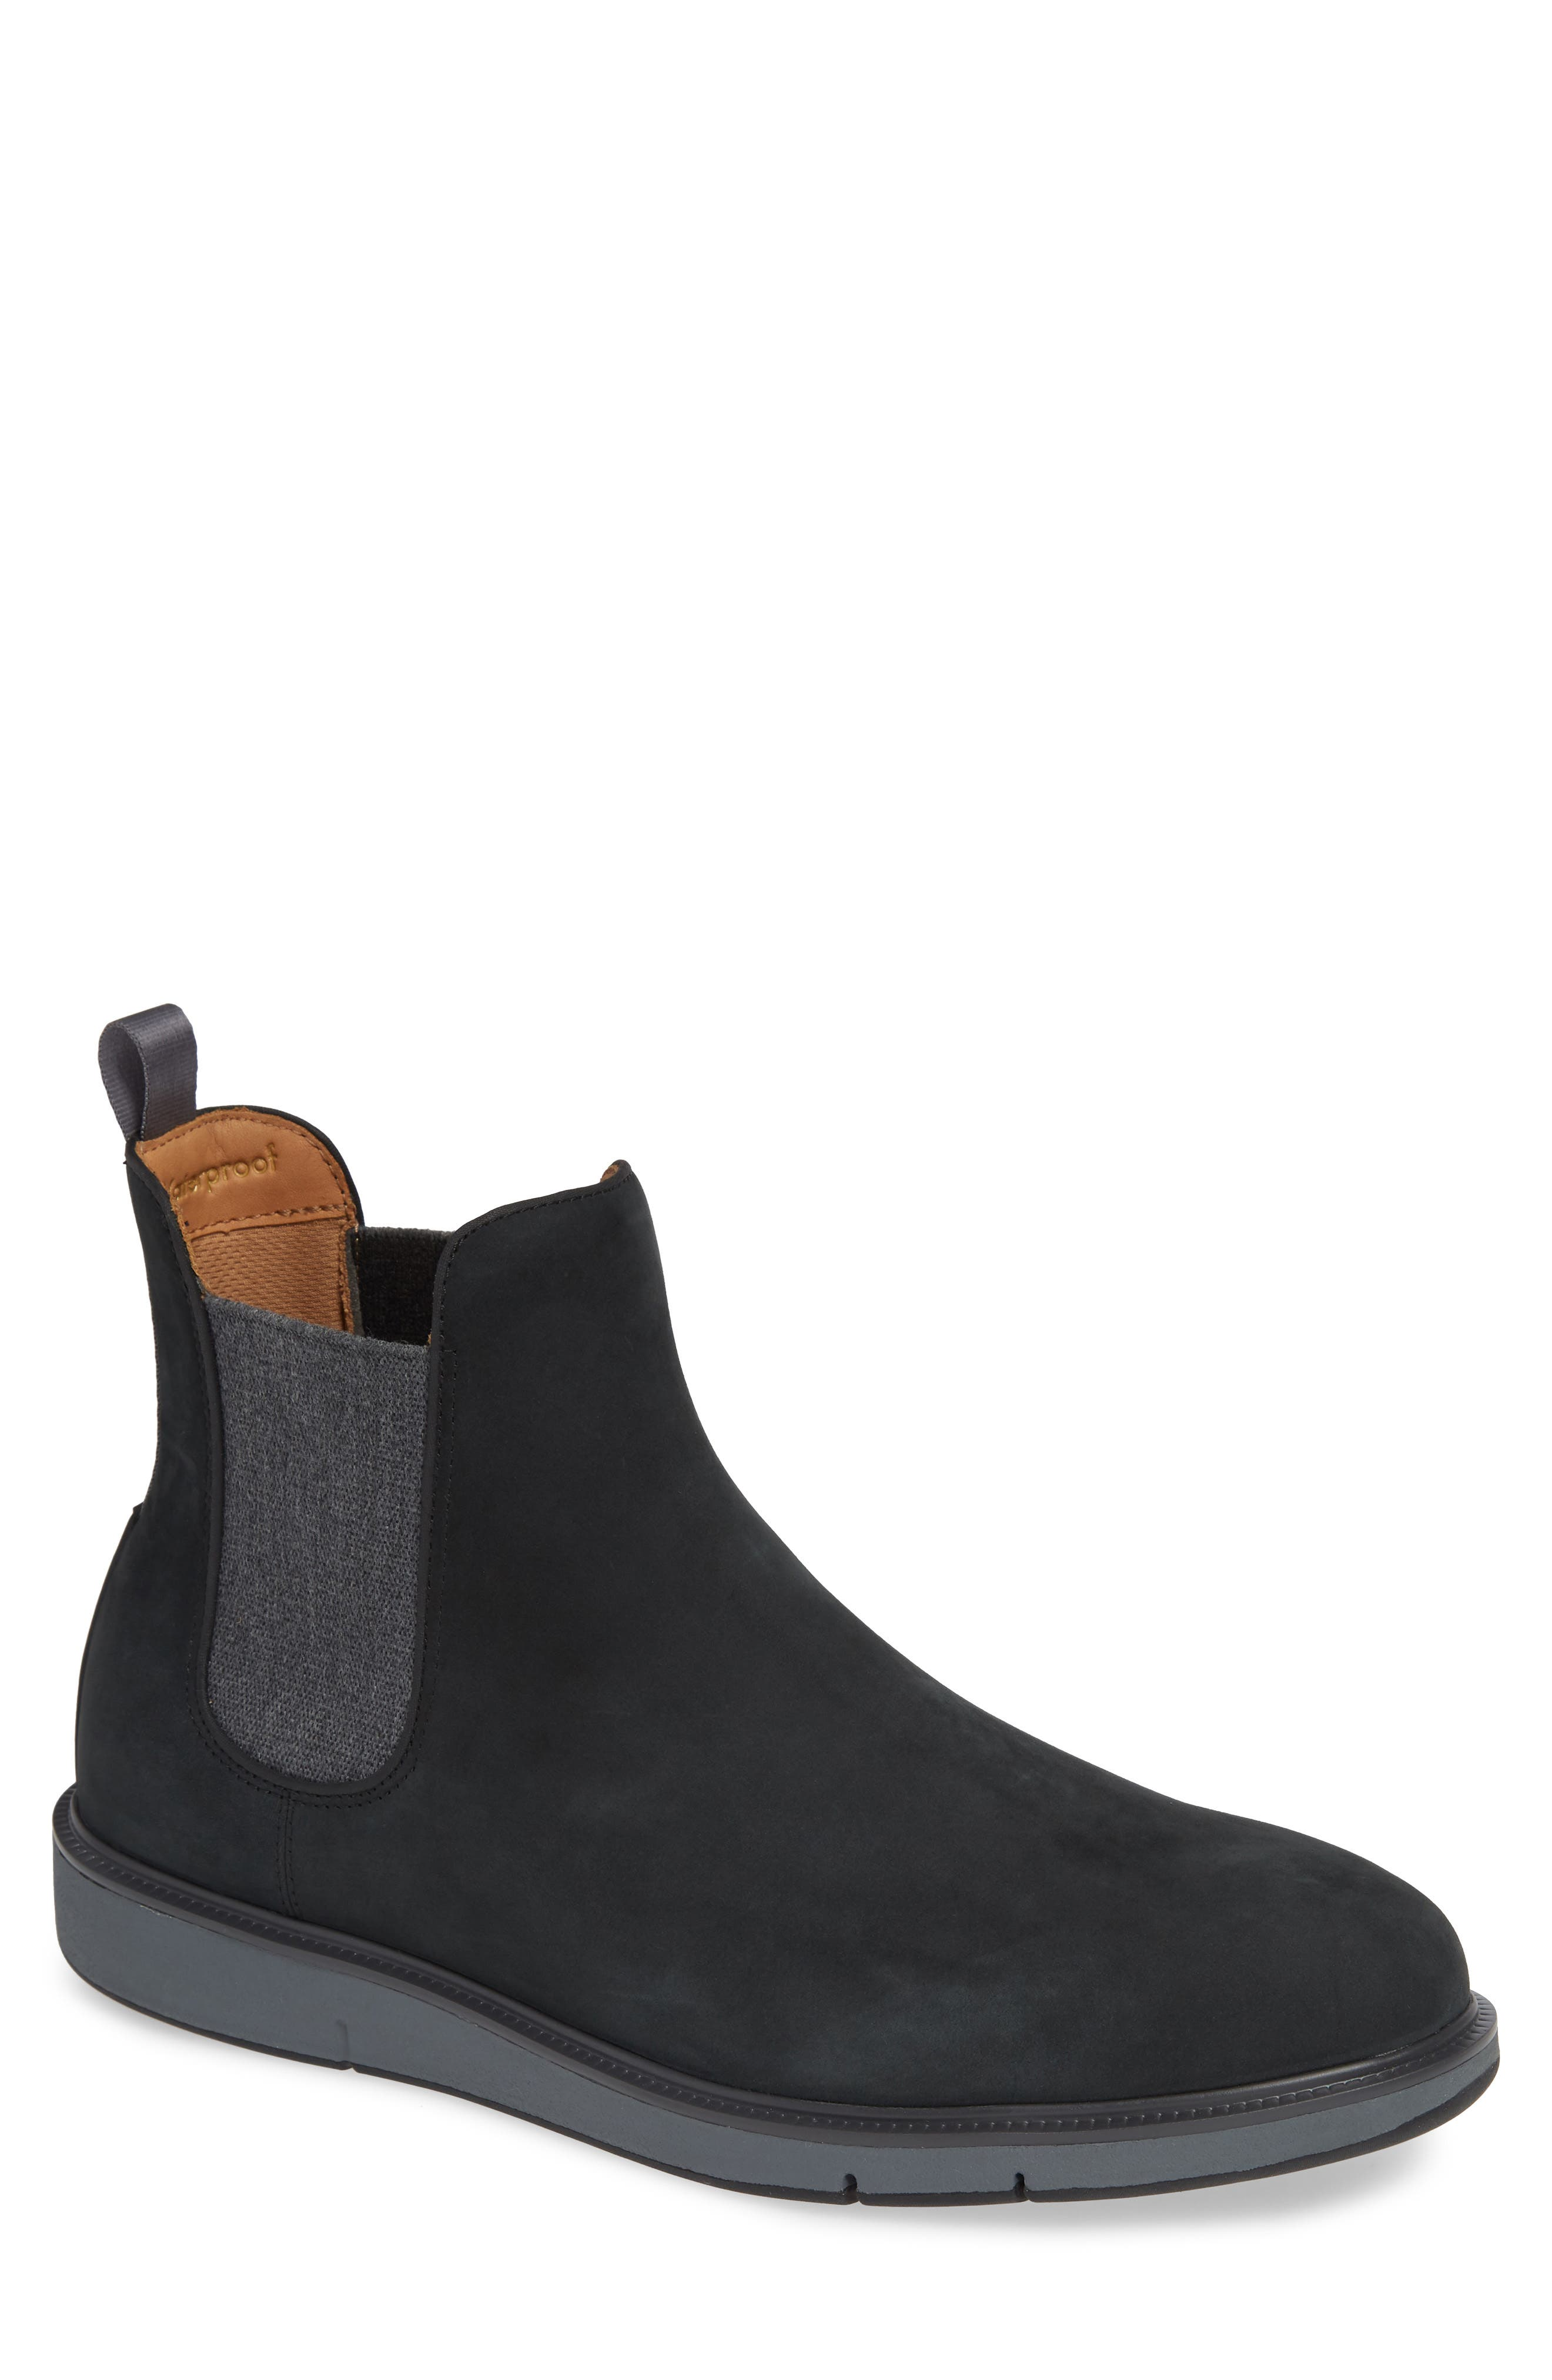 Motion Waterproof Chelsea Boot,                             Main thumbnail 1, color,                             BLACK/ GREY